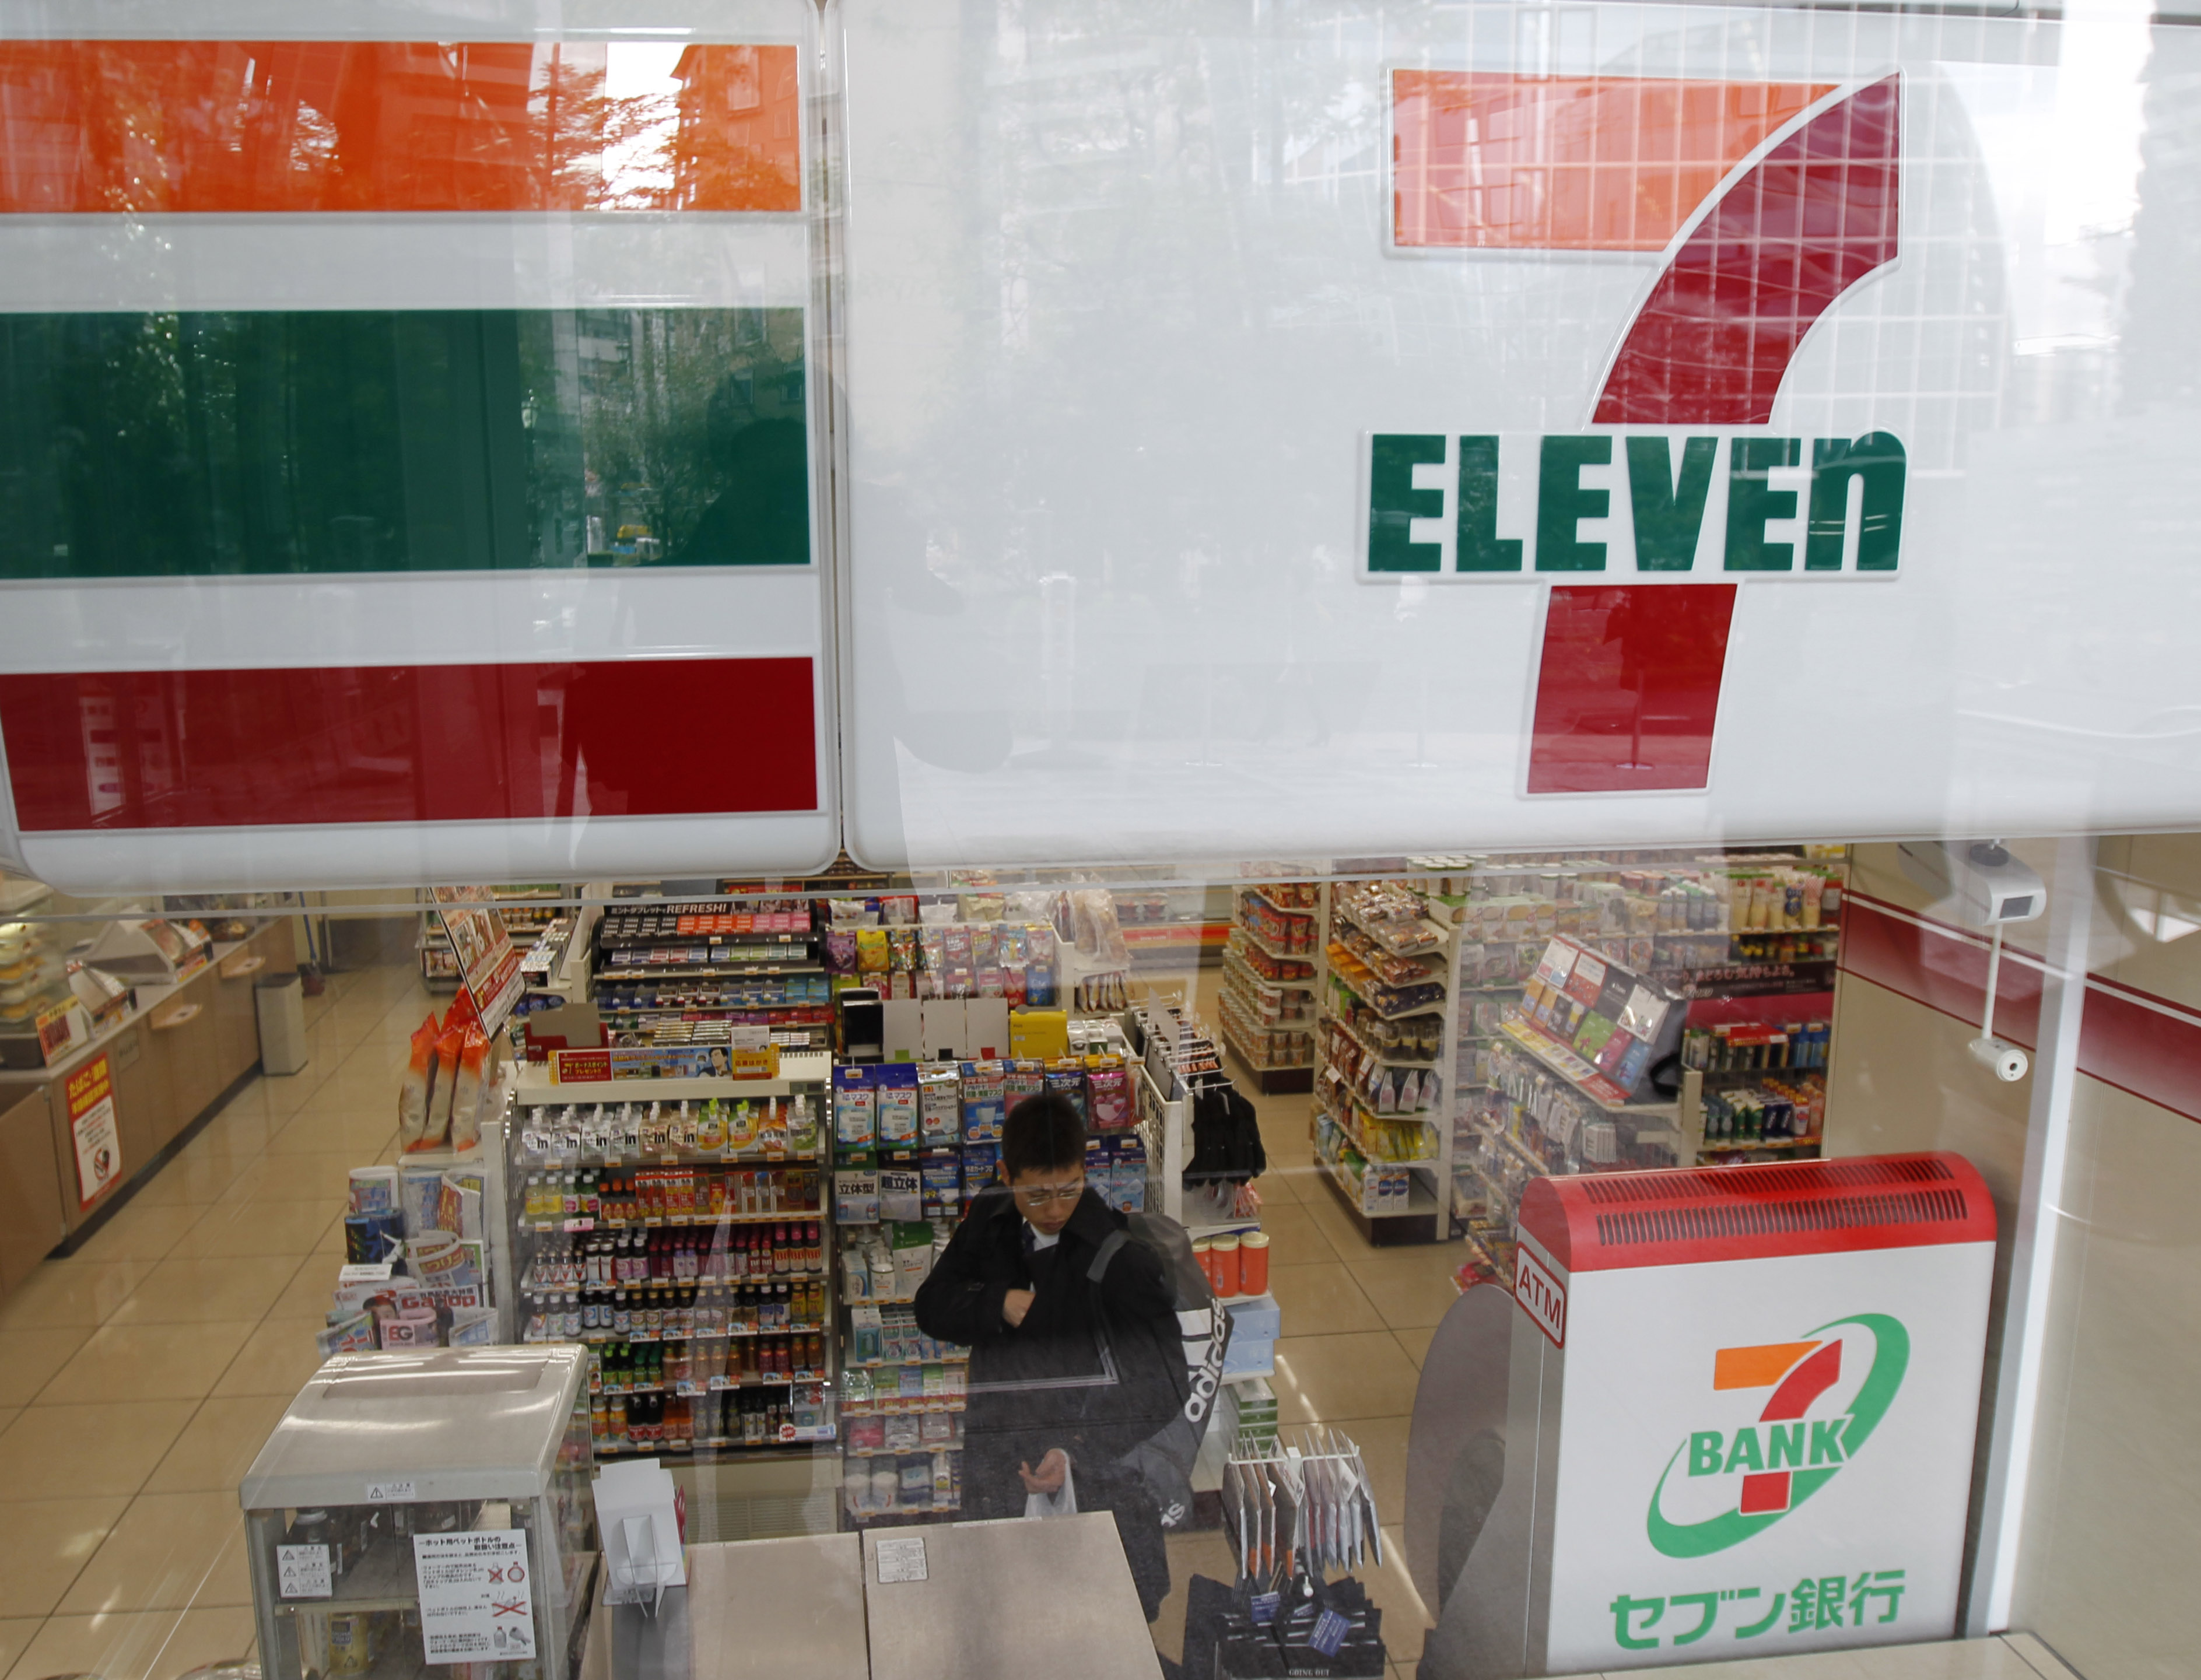 7 Eleven Teams With P90X Creator To fer Healthy Food Options